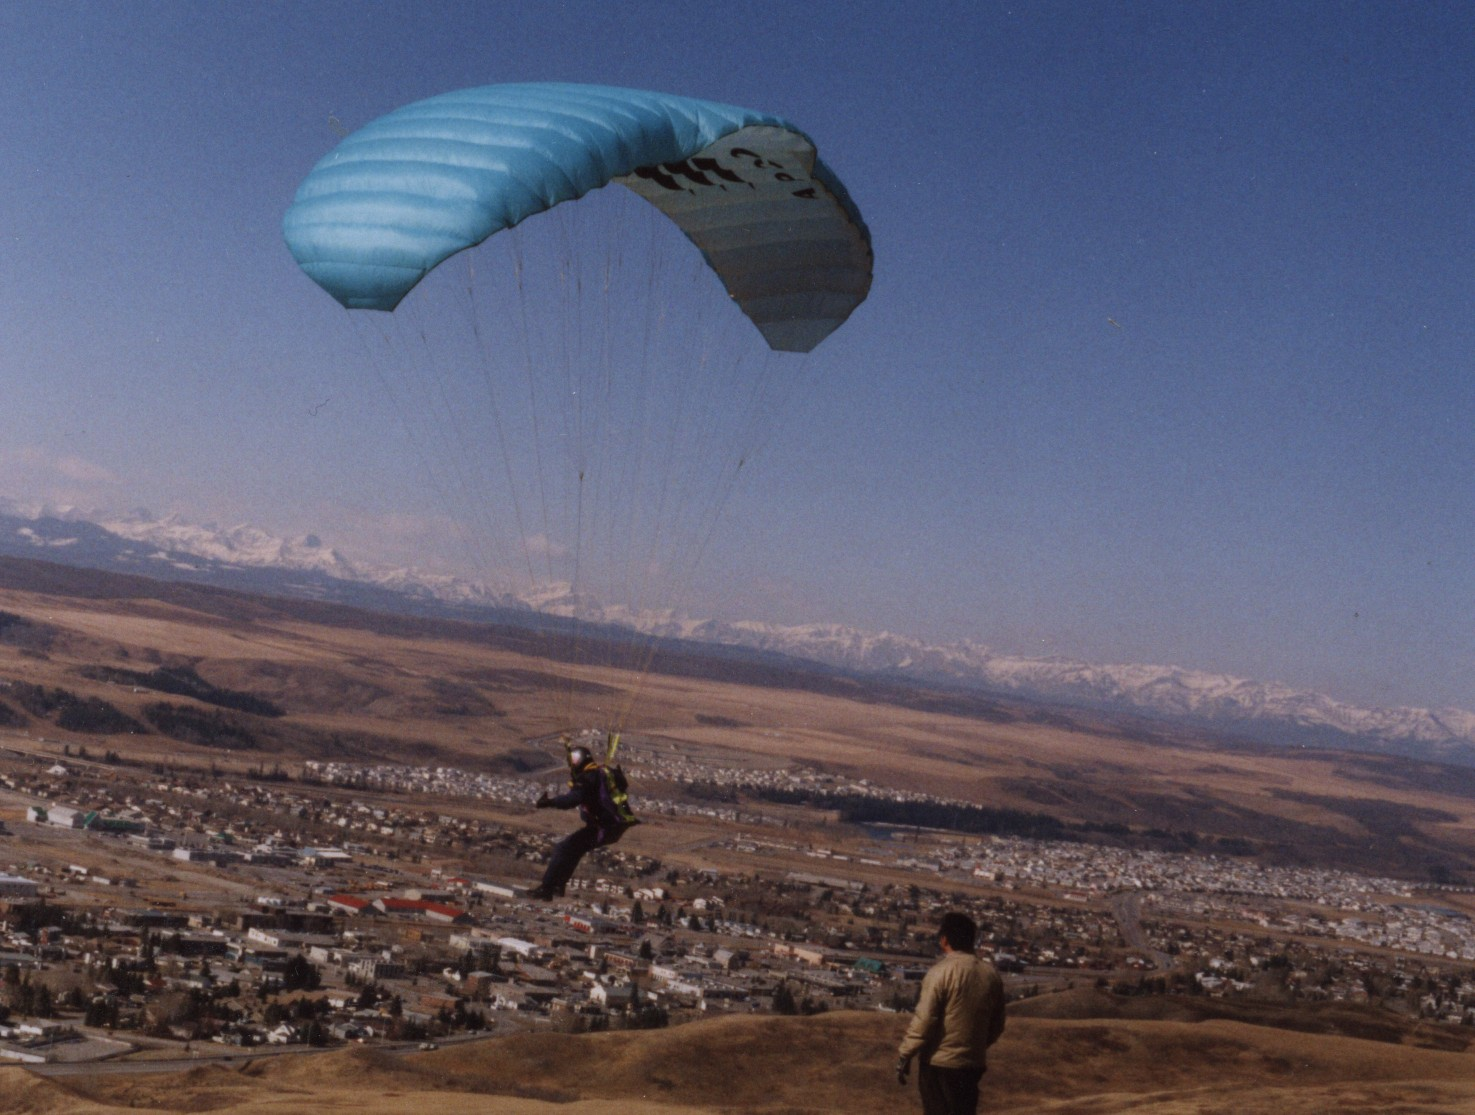 Peter was also a paraglider Pilot! This is him flying in